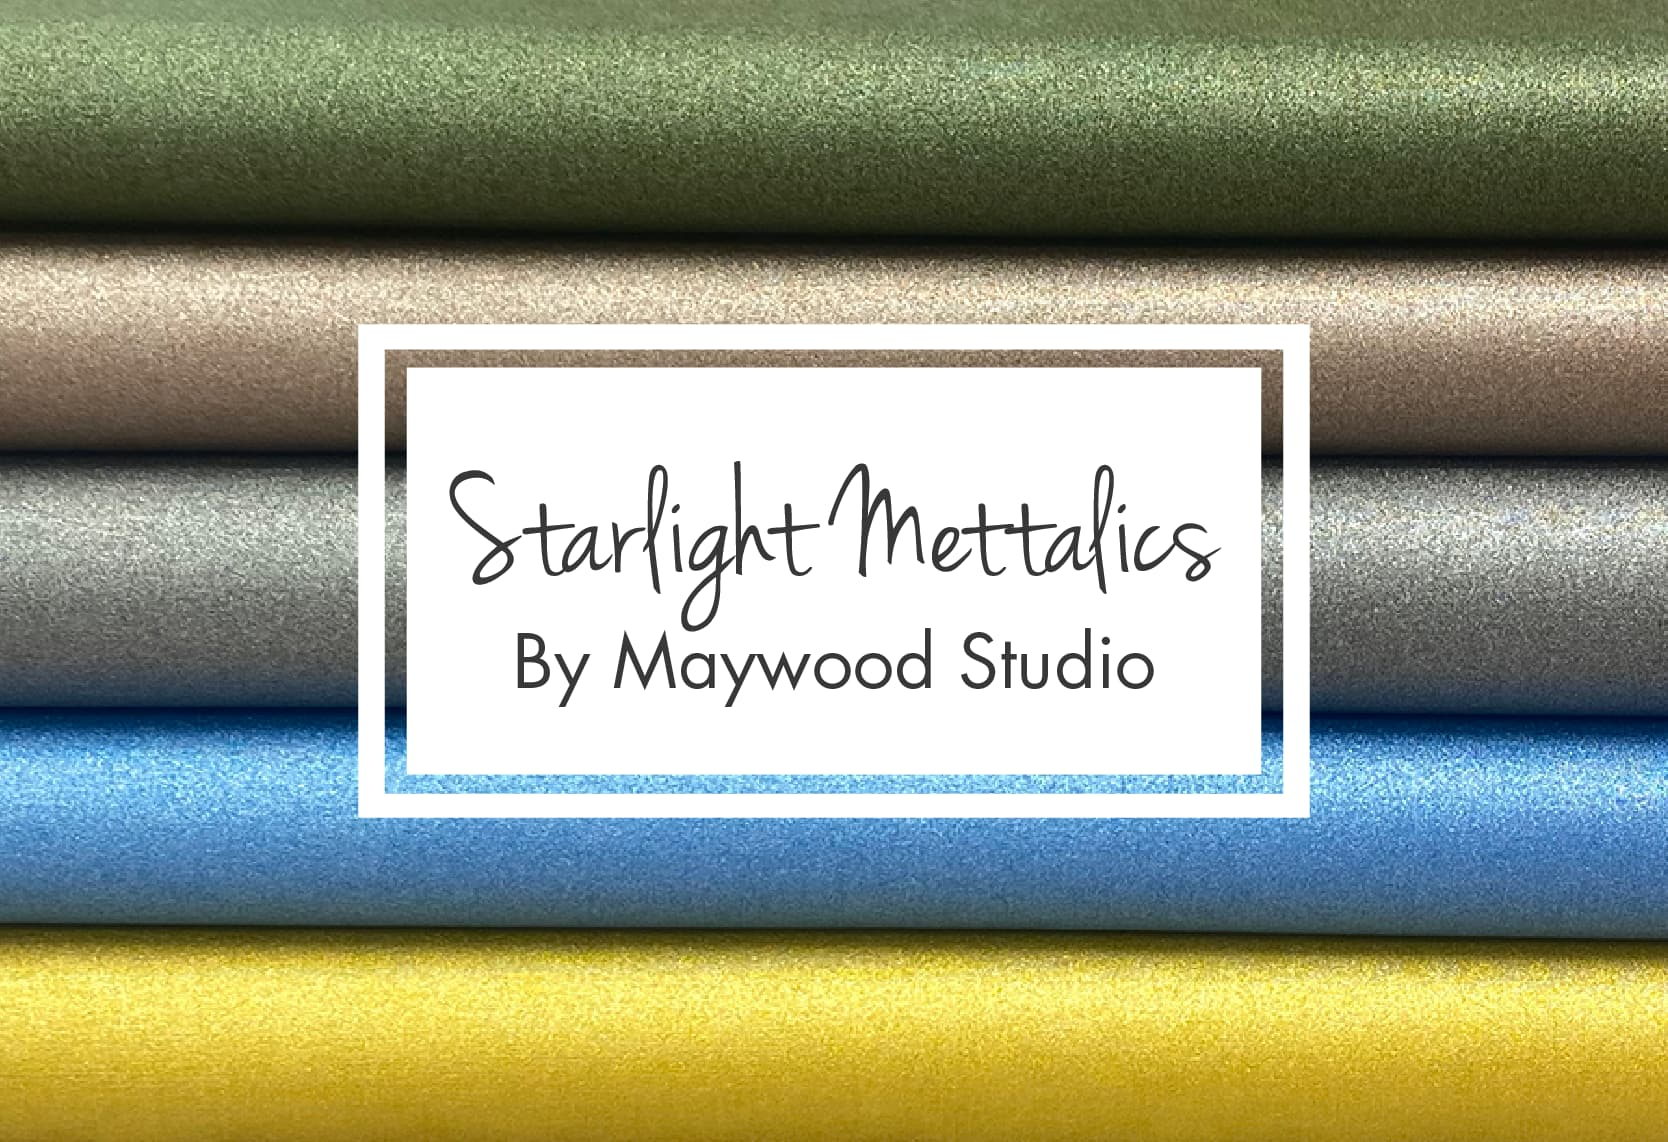 Starlight Metallics by Maywood Studio